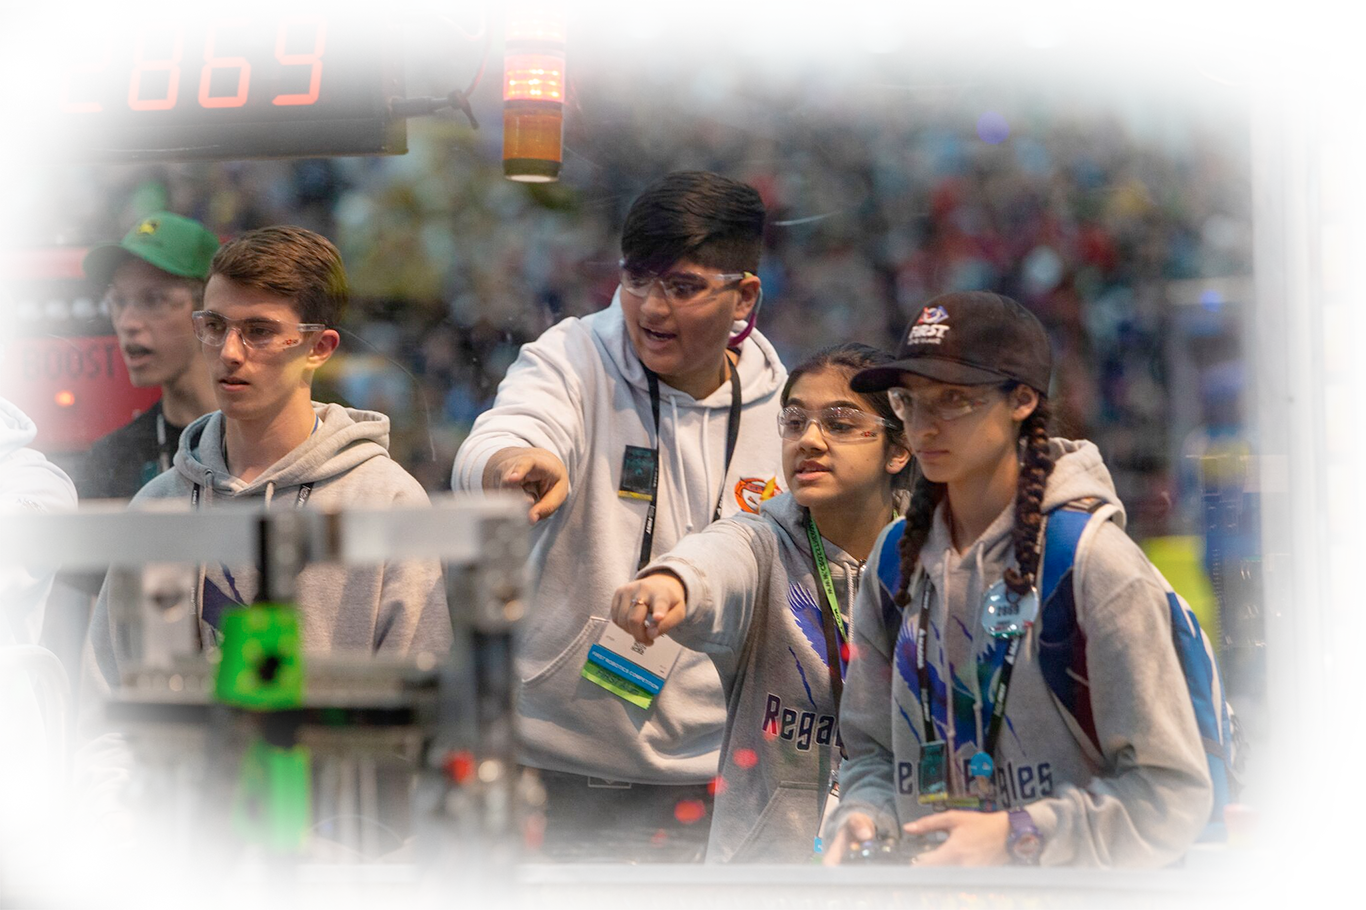 Students playing robotics game on competition field